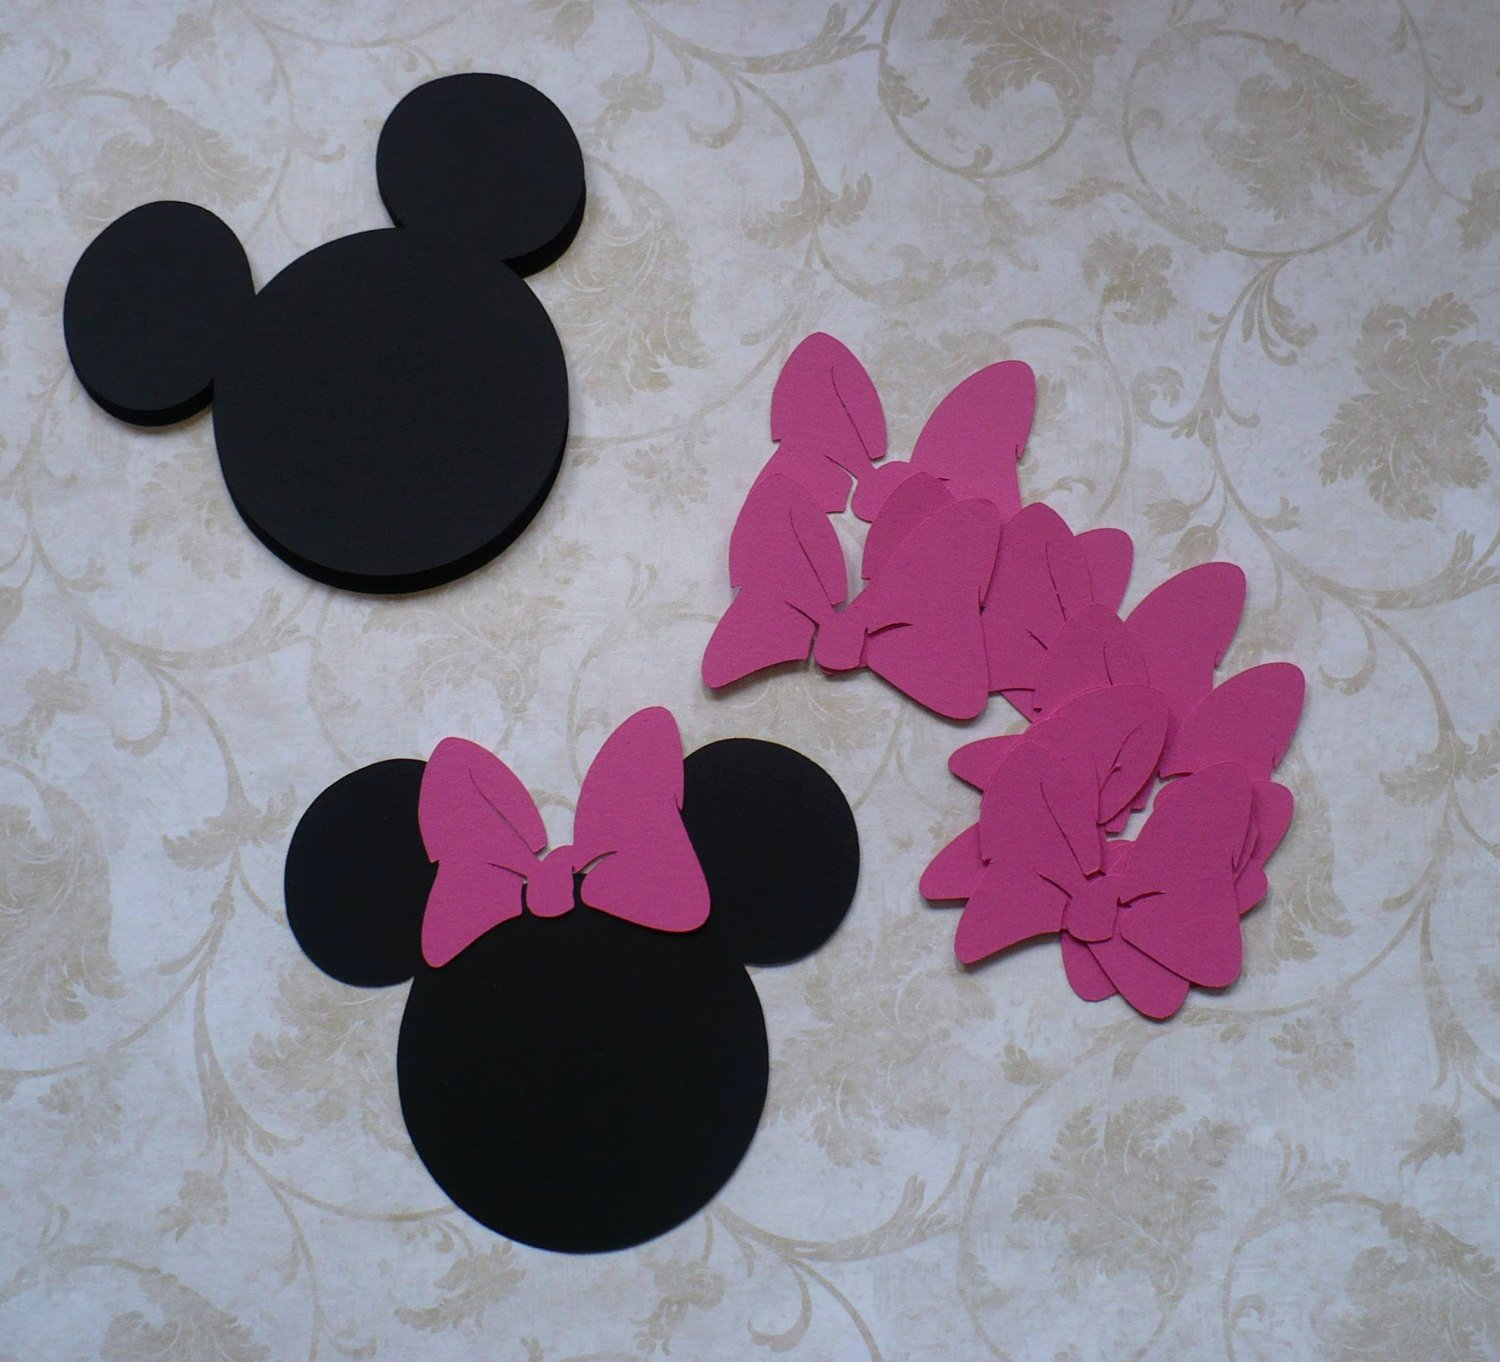 Minnie Mouse Cut Out Head Luxury 12 Minnie Mouse Head Shapes Hot Pink Bow Die Cut 3 5 Inch Pcs